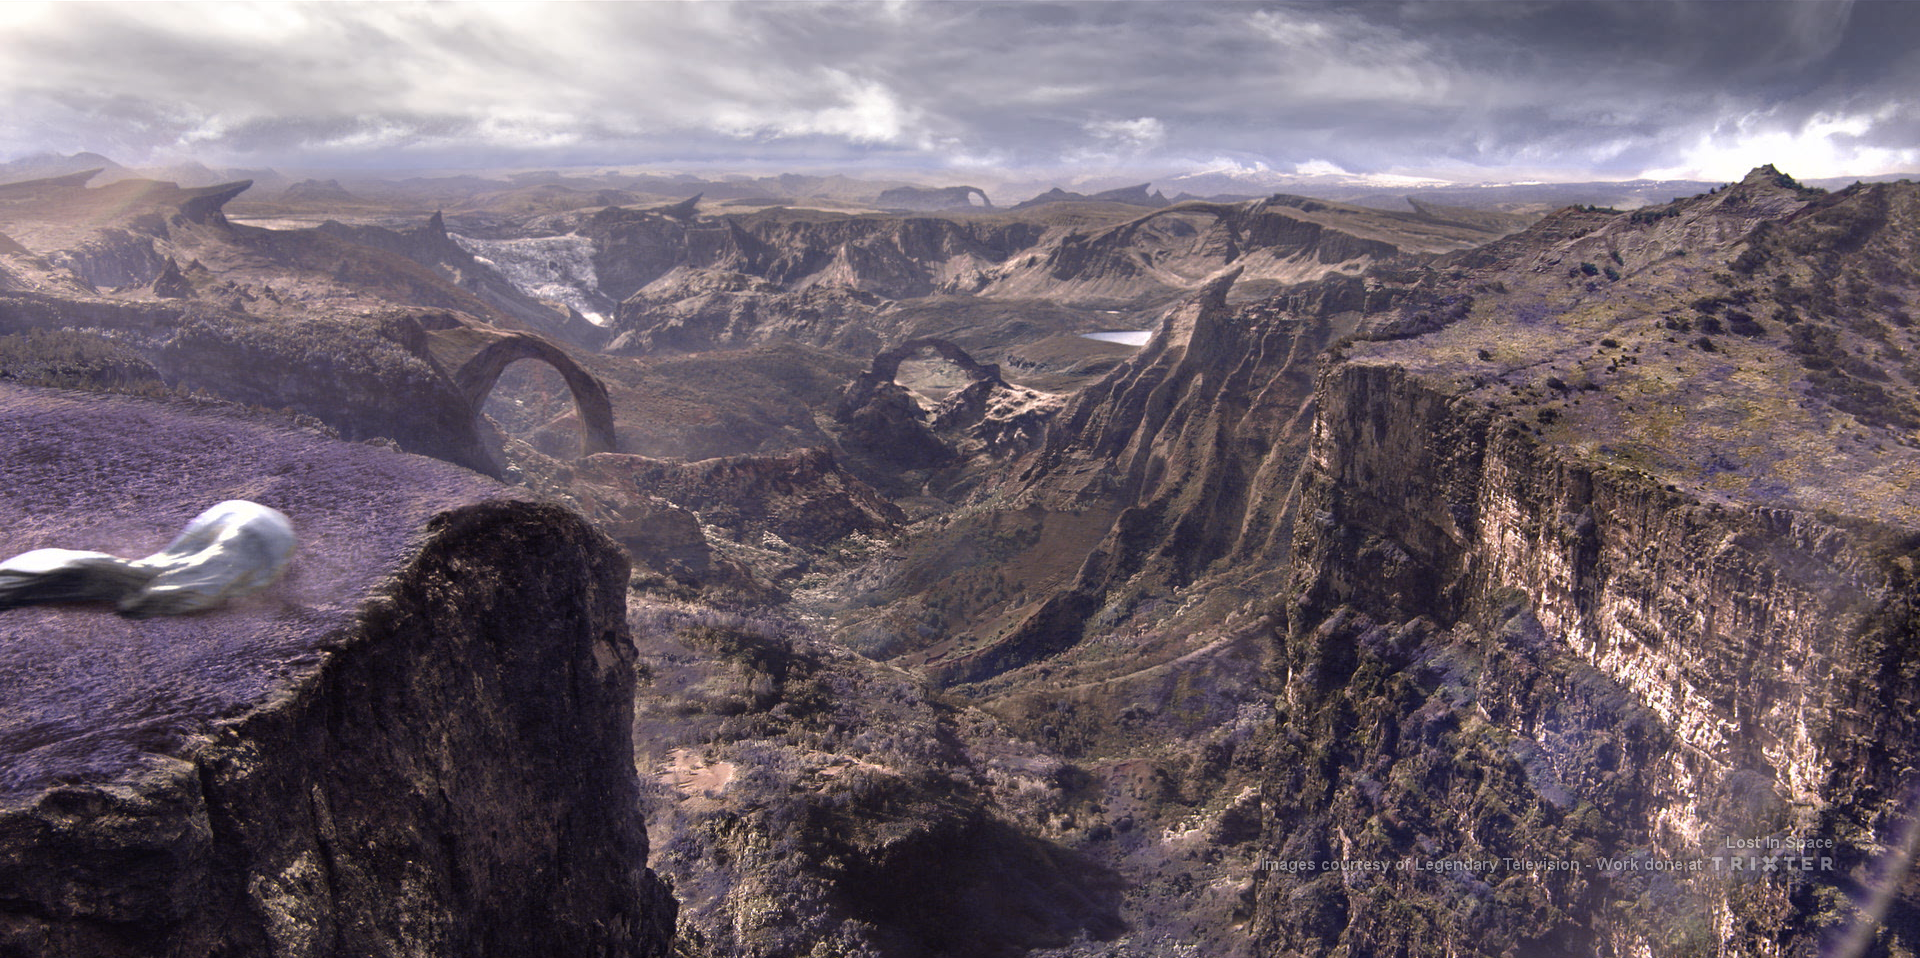 Matte Painting-Full gallery here: